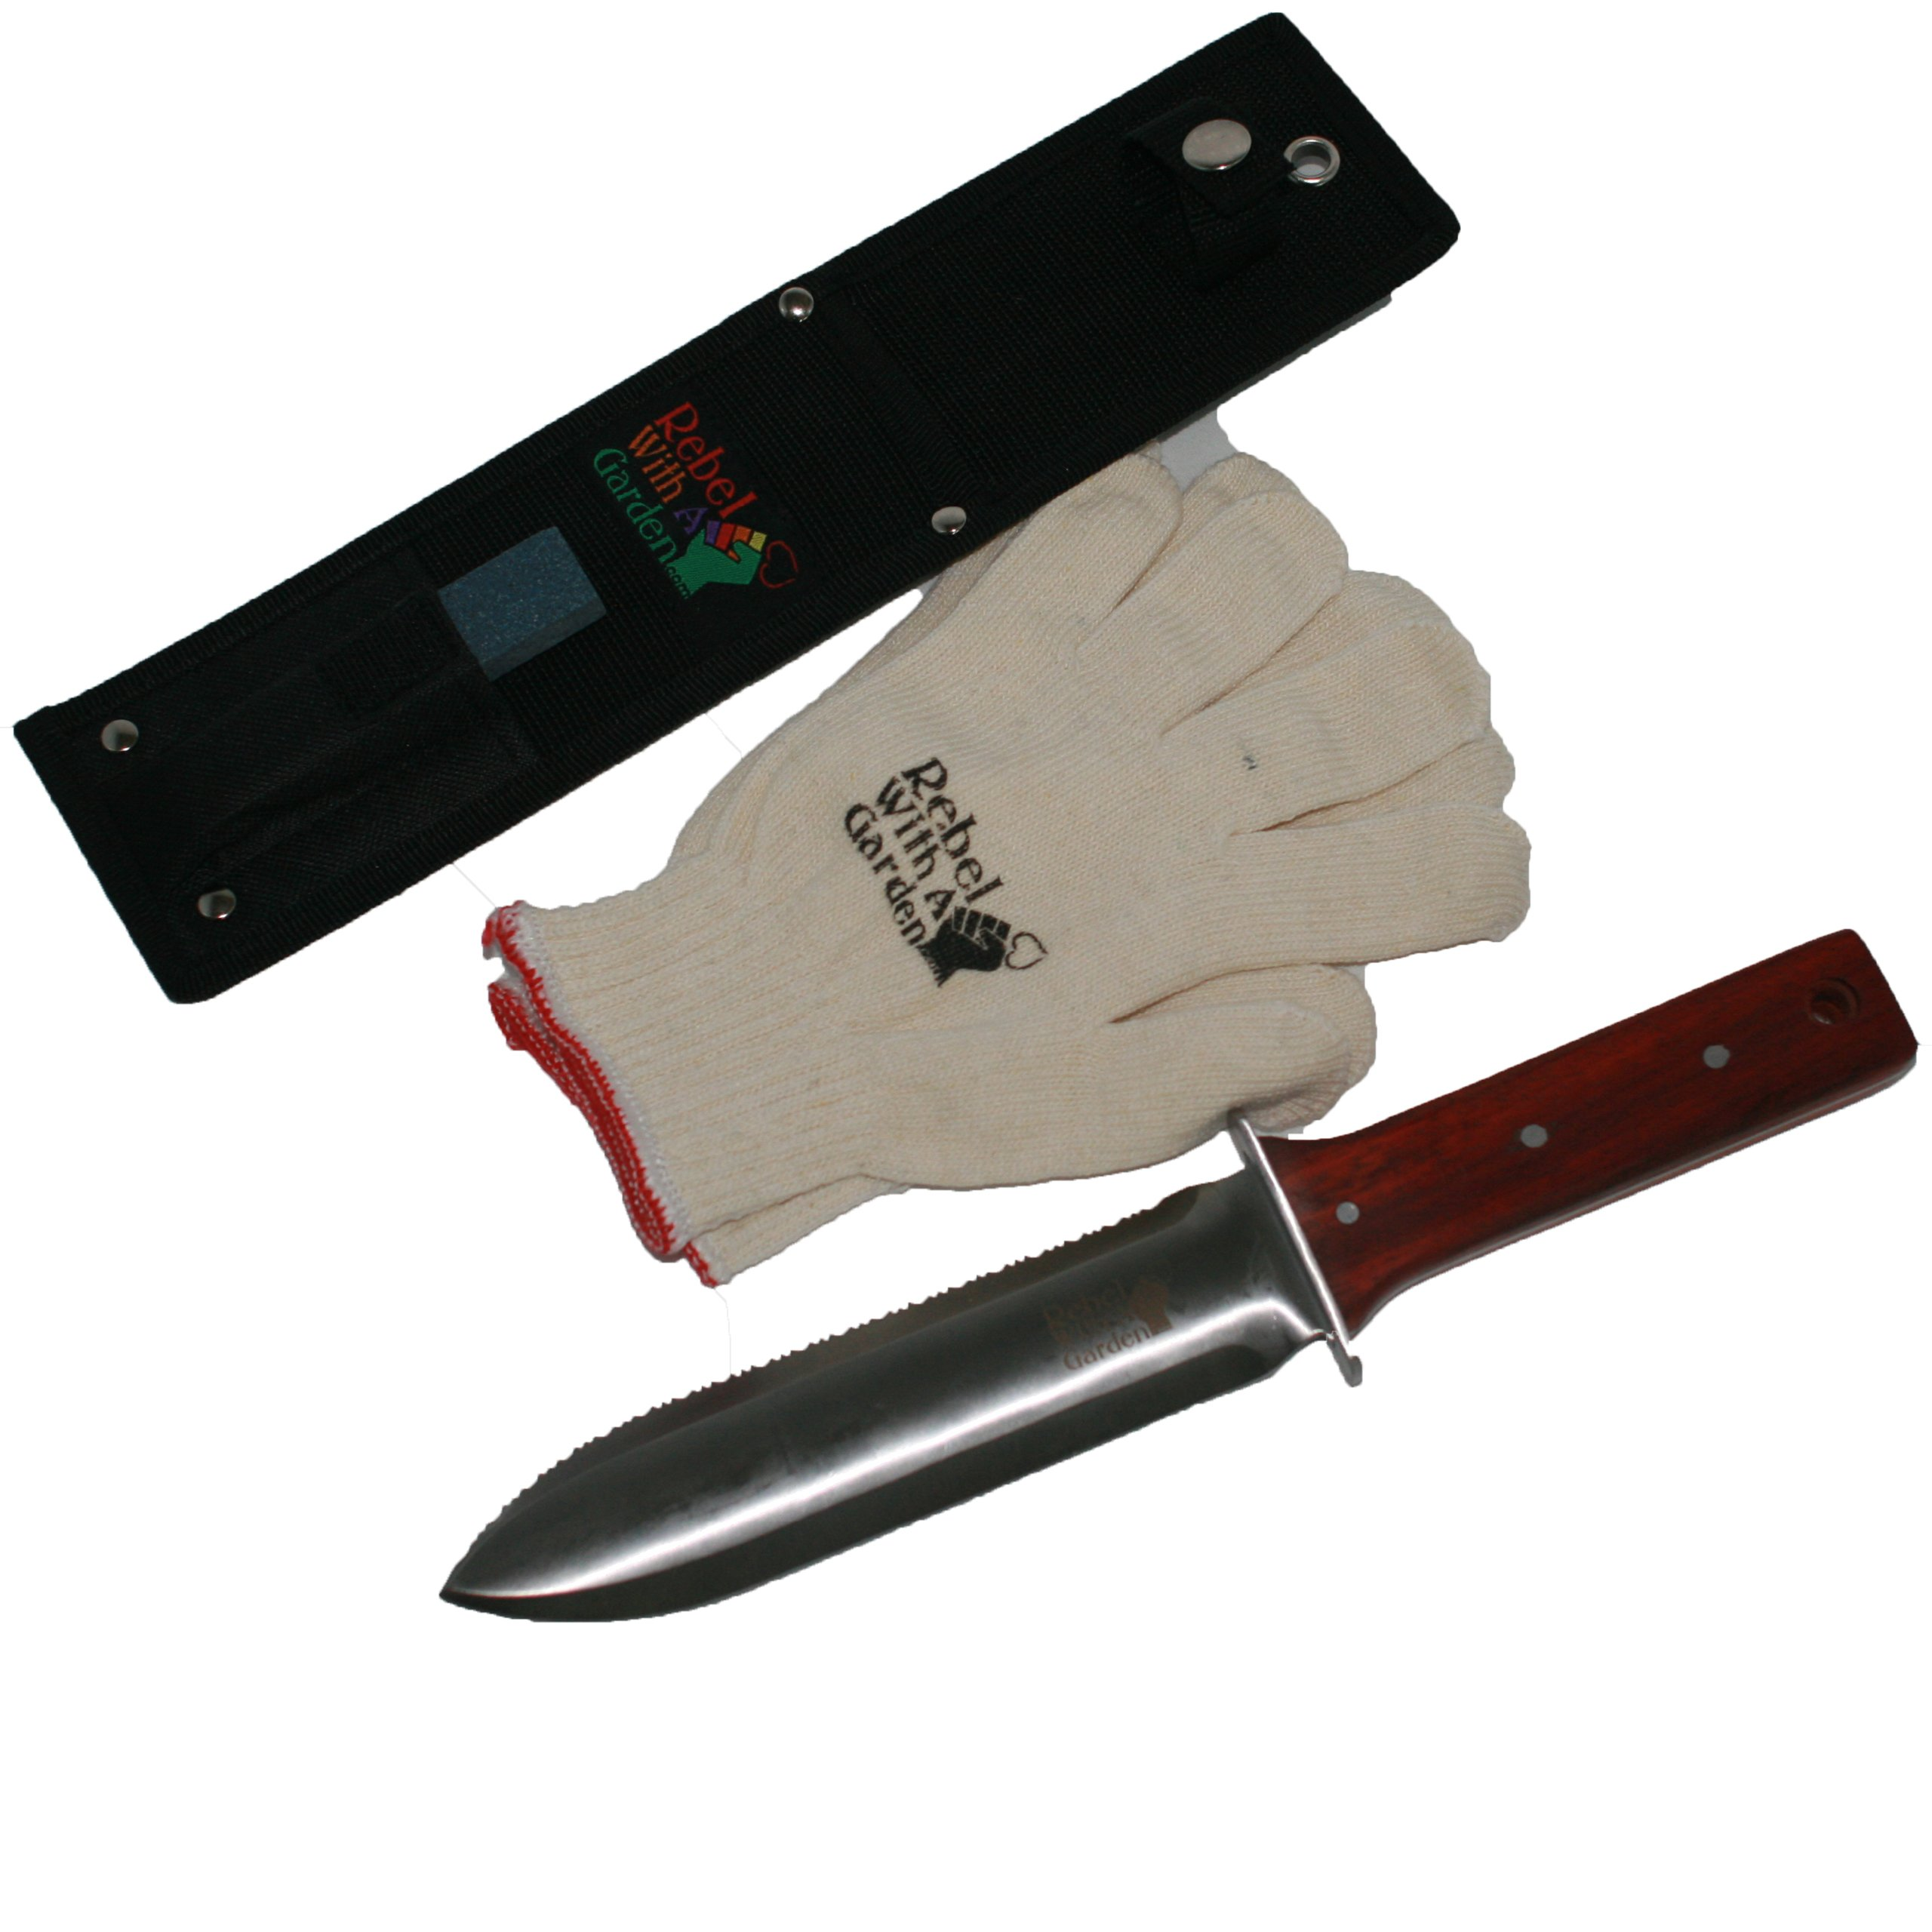 Rebel With A Garden Rebel Garden Samurai Japanese Hori Hori Garden Knife Tool by (Nylon Sheath, Whetstone and Cotton garden Gloves)